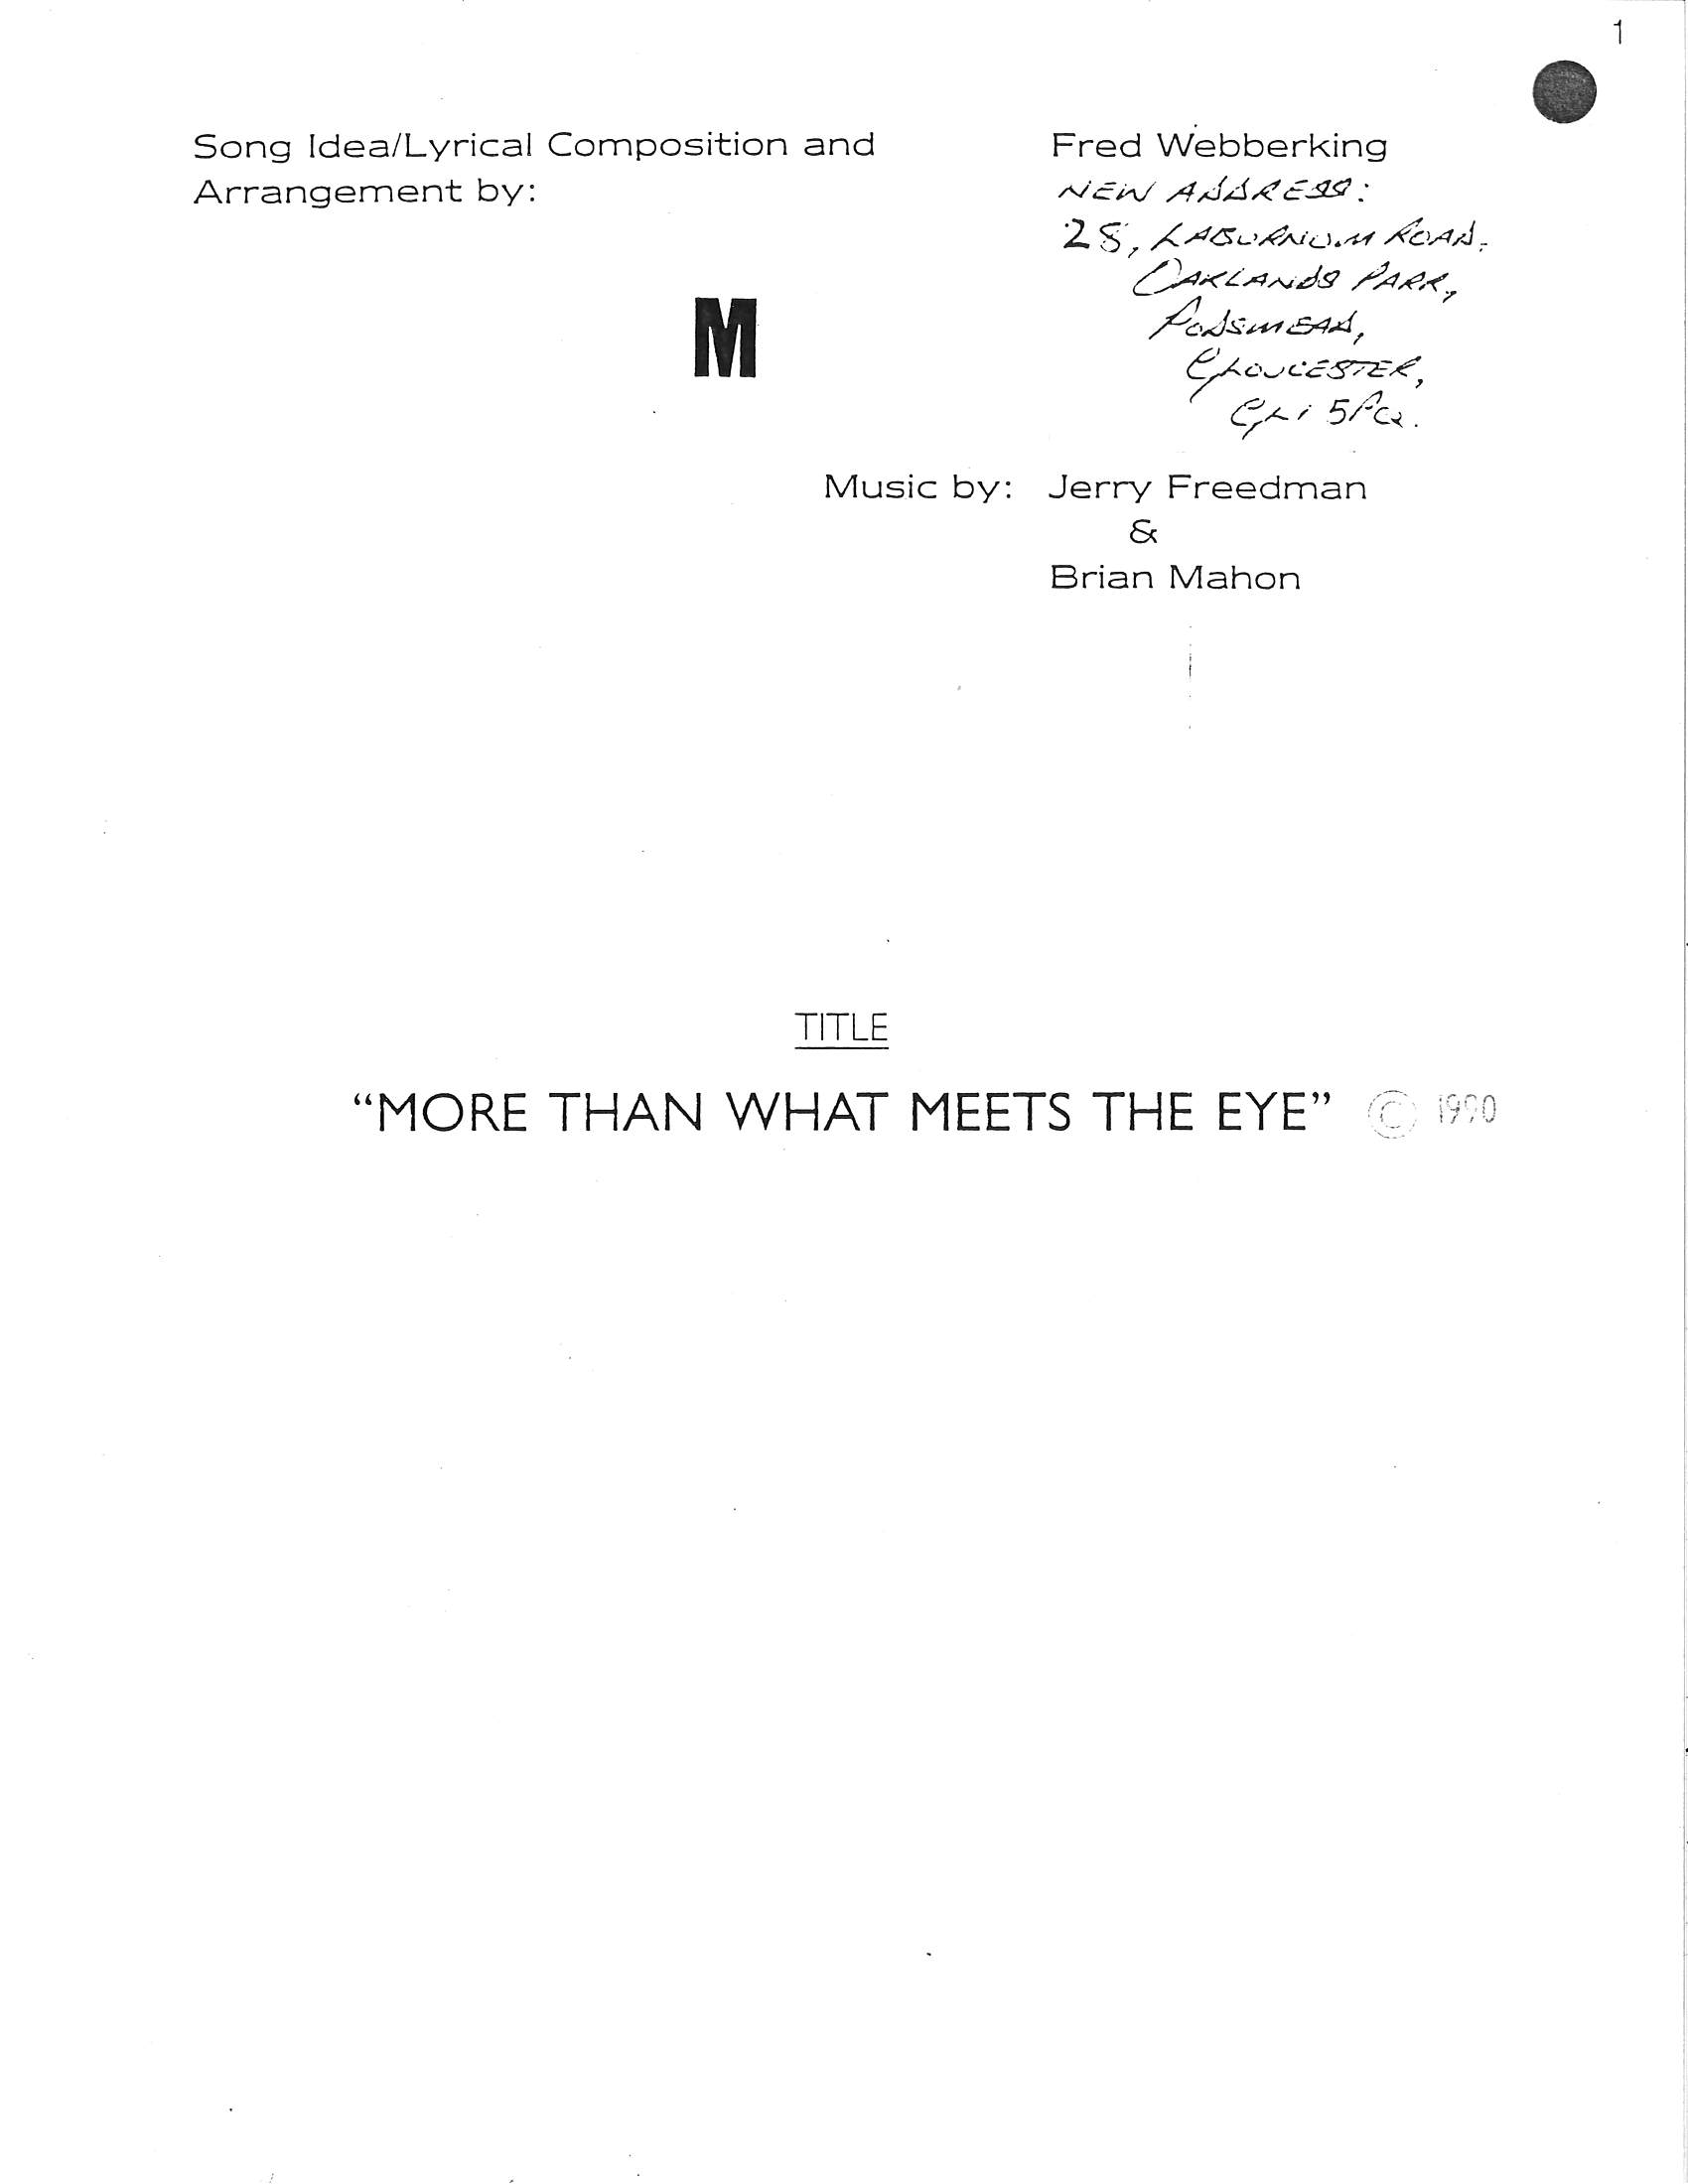 Song_More_Than_What_Meets_The_Eye_Thumbnail